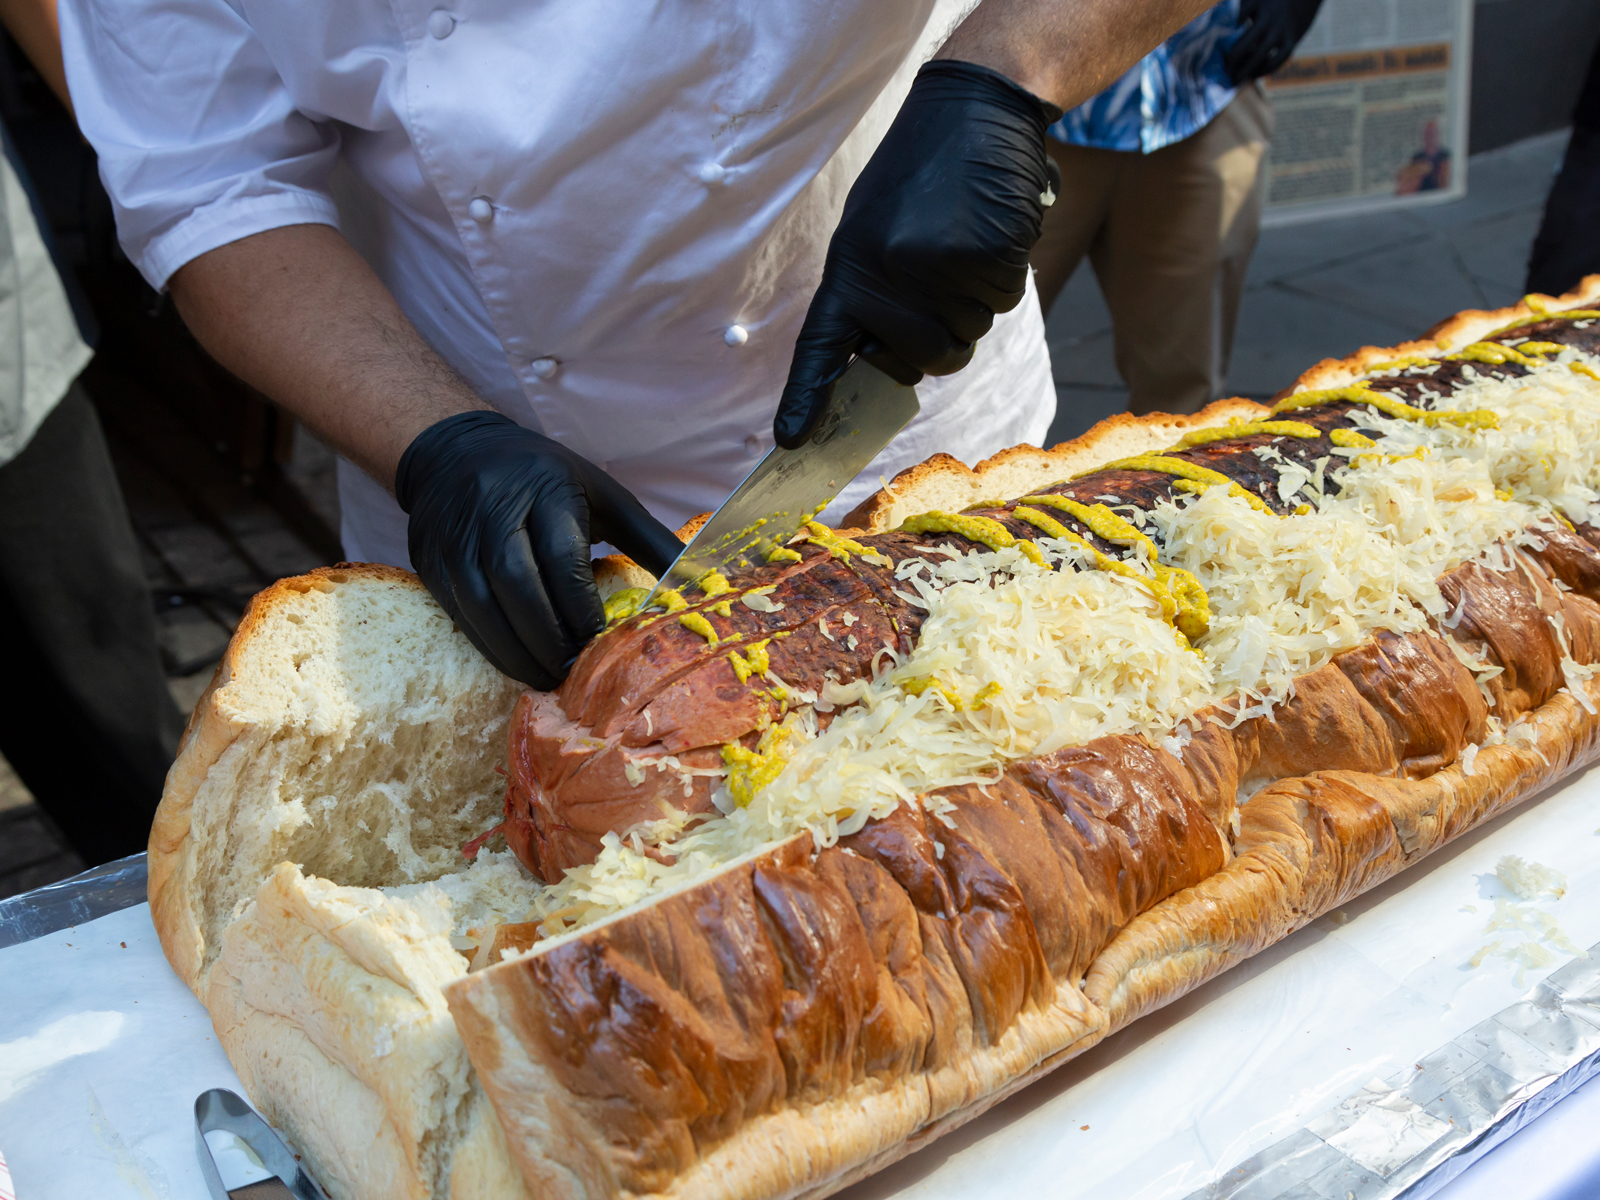 worlds-largest-hot-dog-3-FT-BLOG0719.JPG